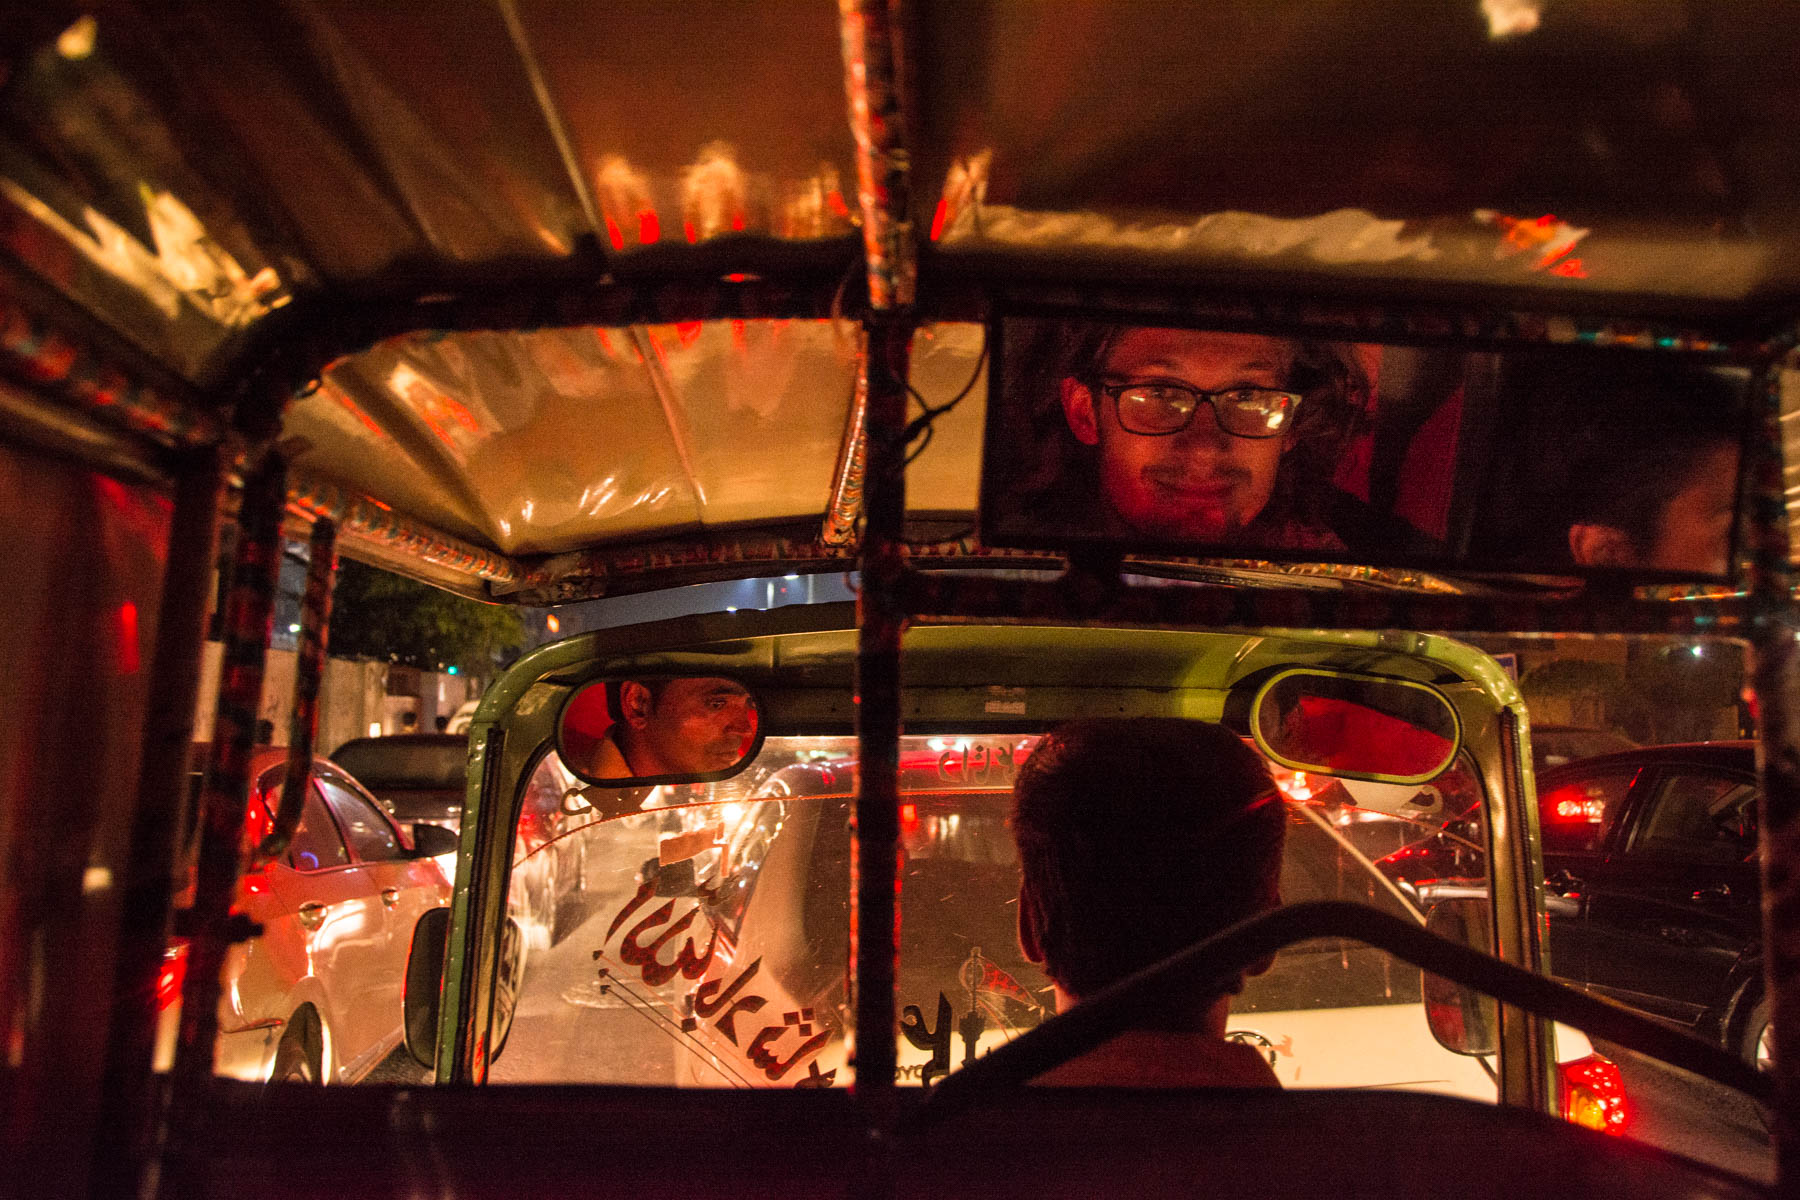 A rickshaw at night in Lahore, Pakistan